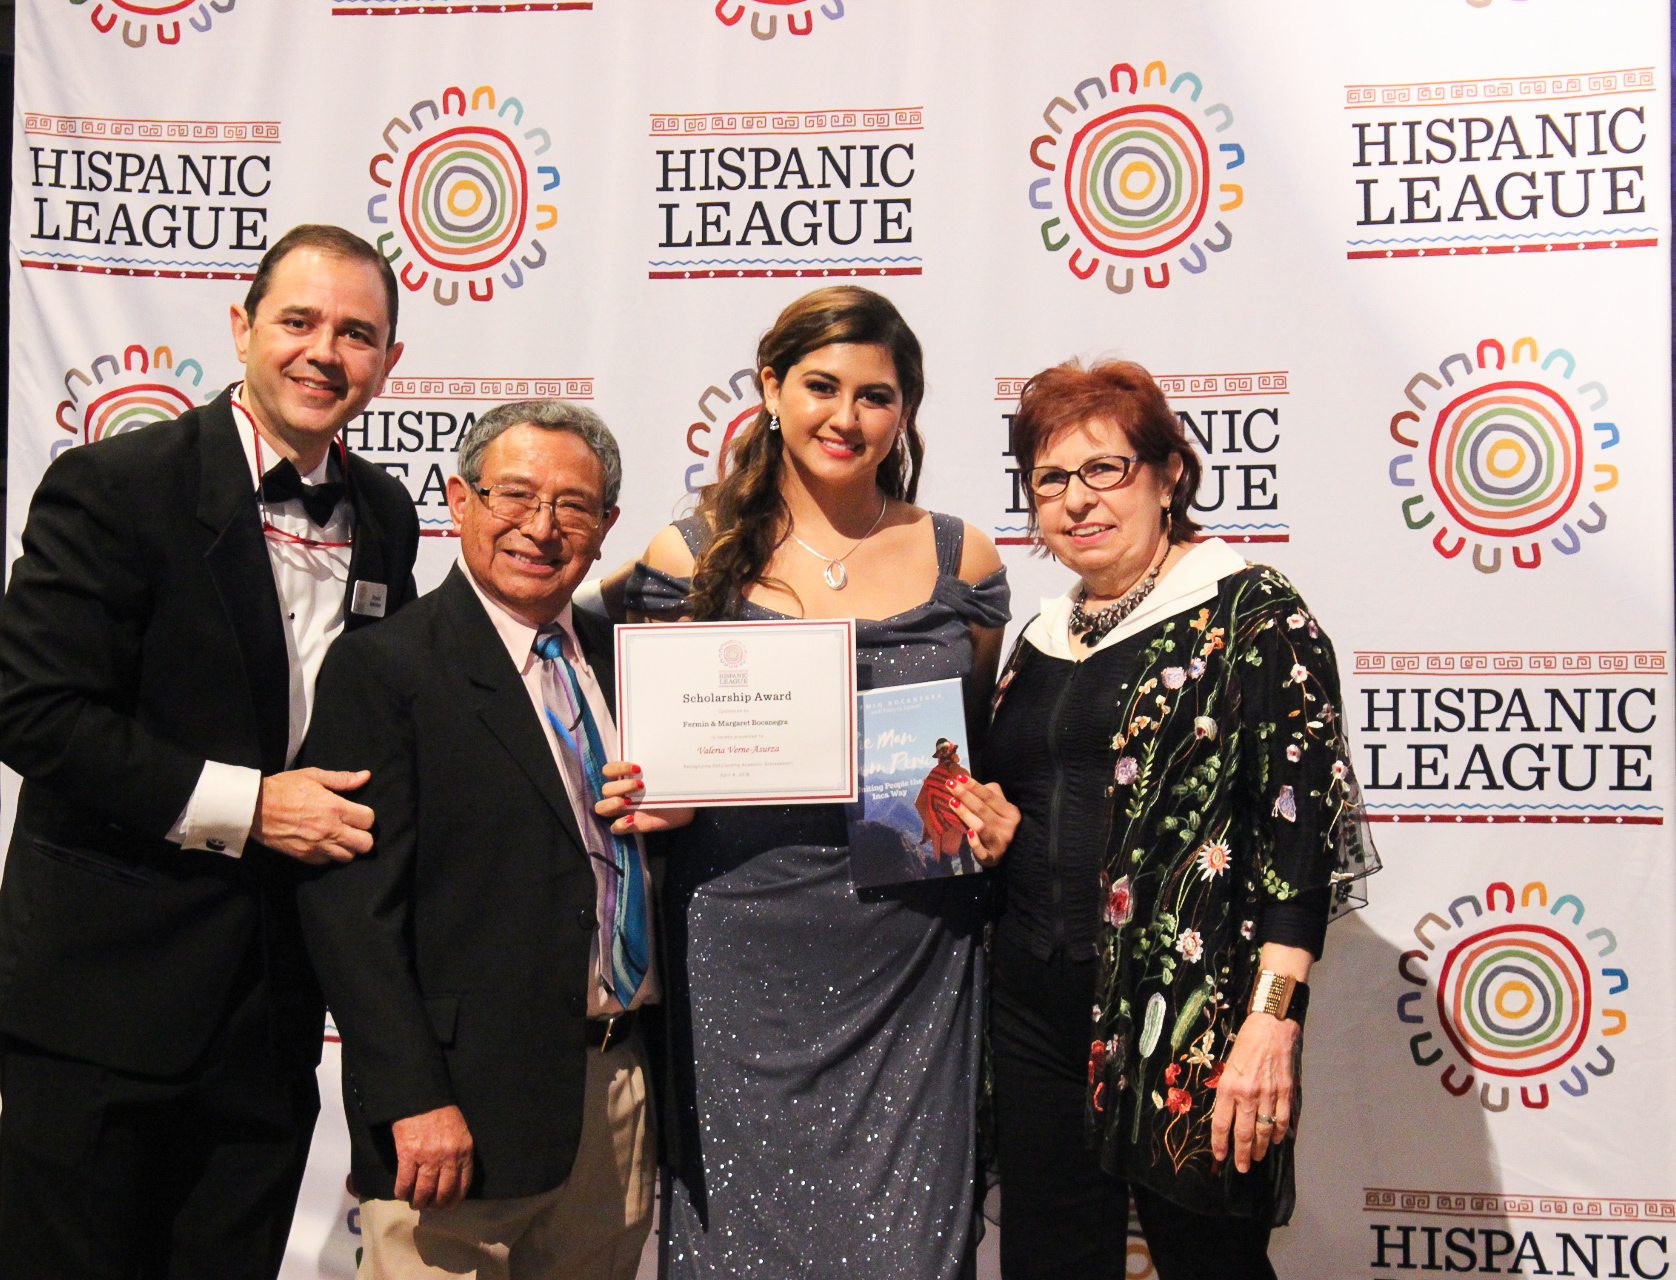 Scholarship recipient Valeria Verne, receiving her scholarship certificate from Fermin and Margaret Bocanegra at the Spanish Nite Gala.